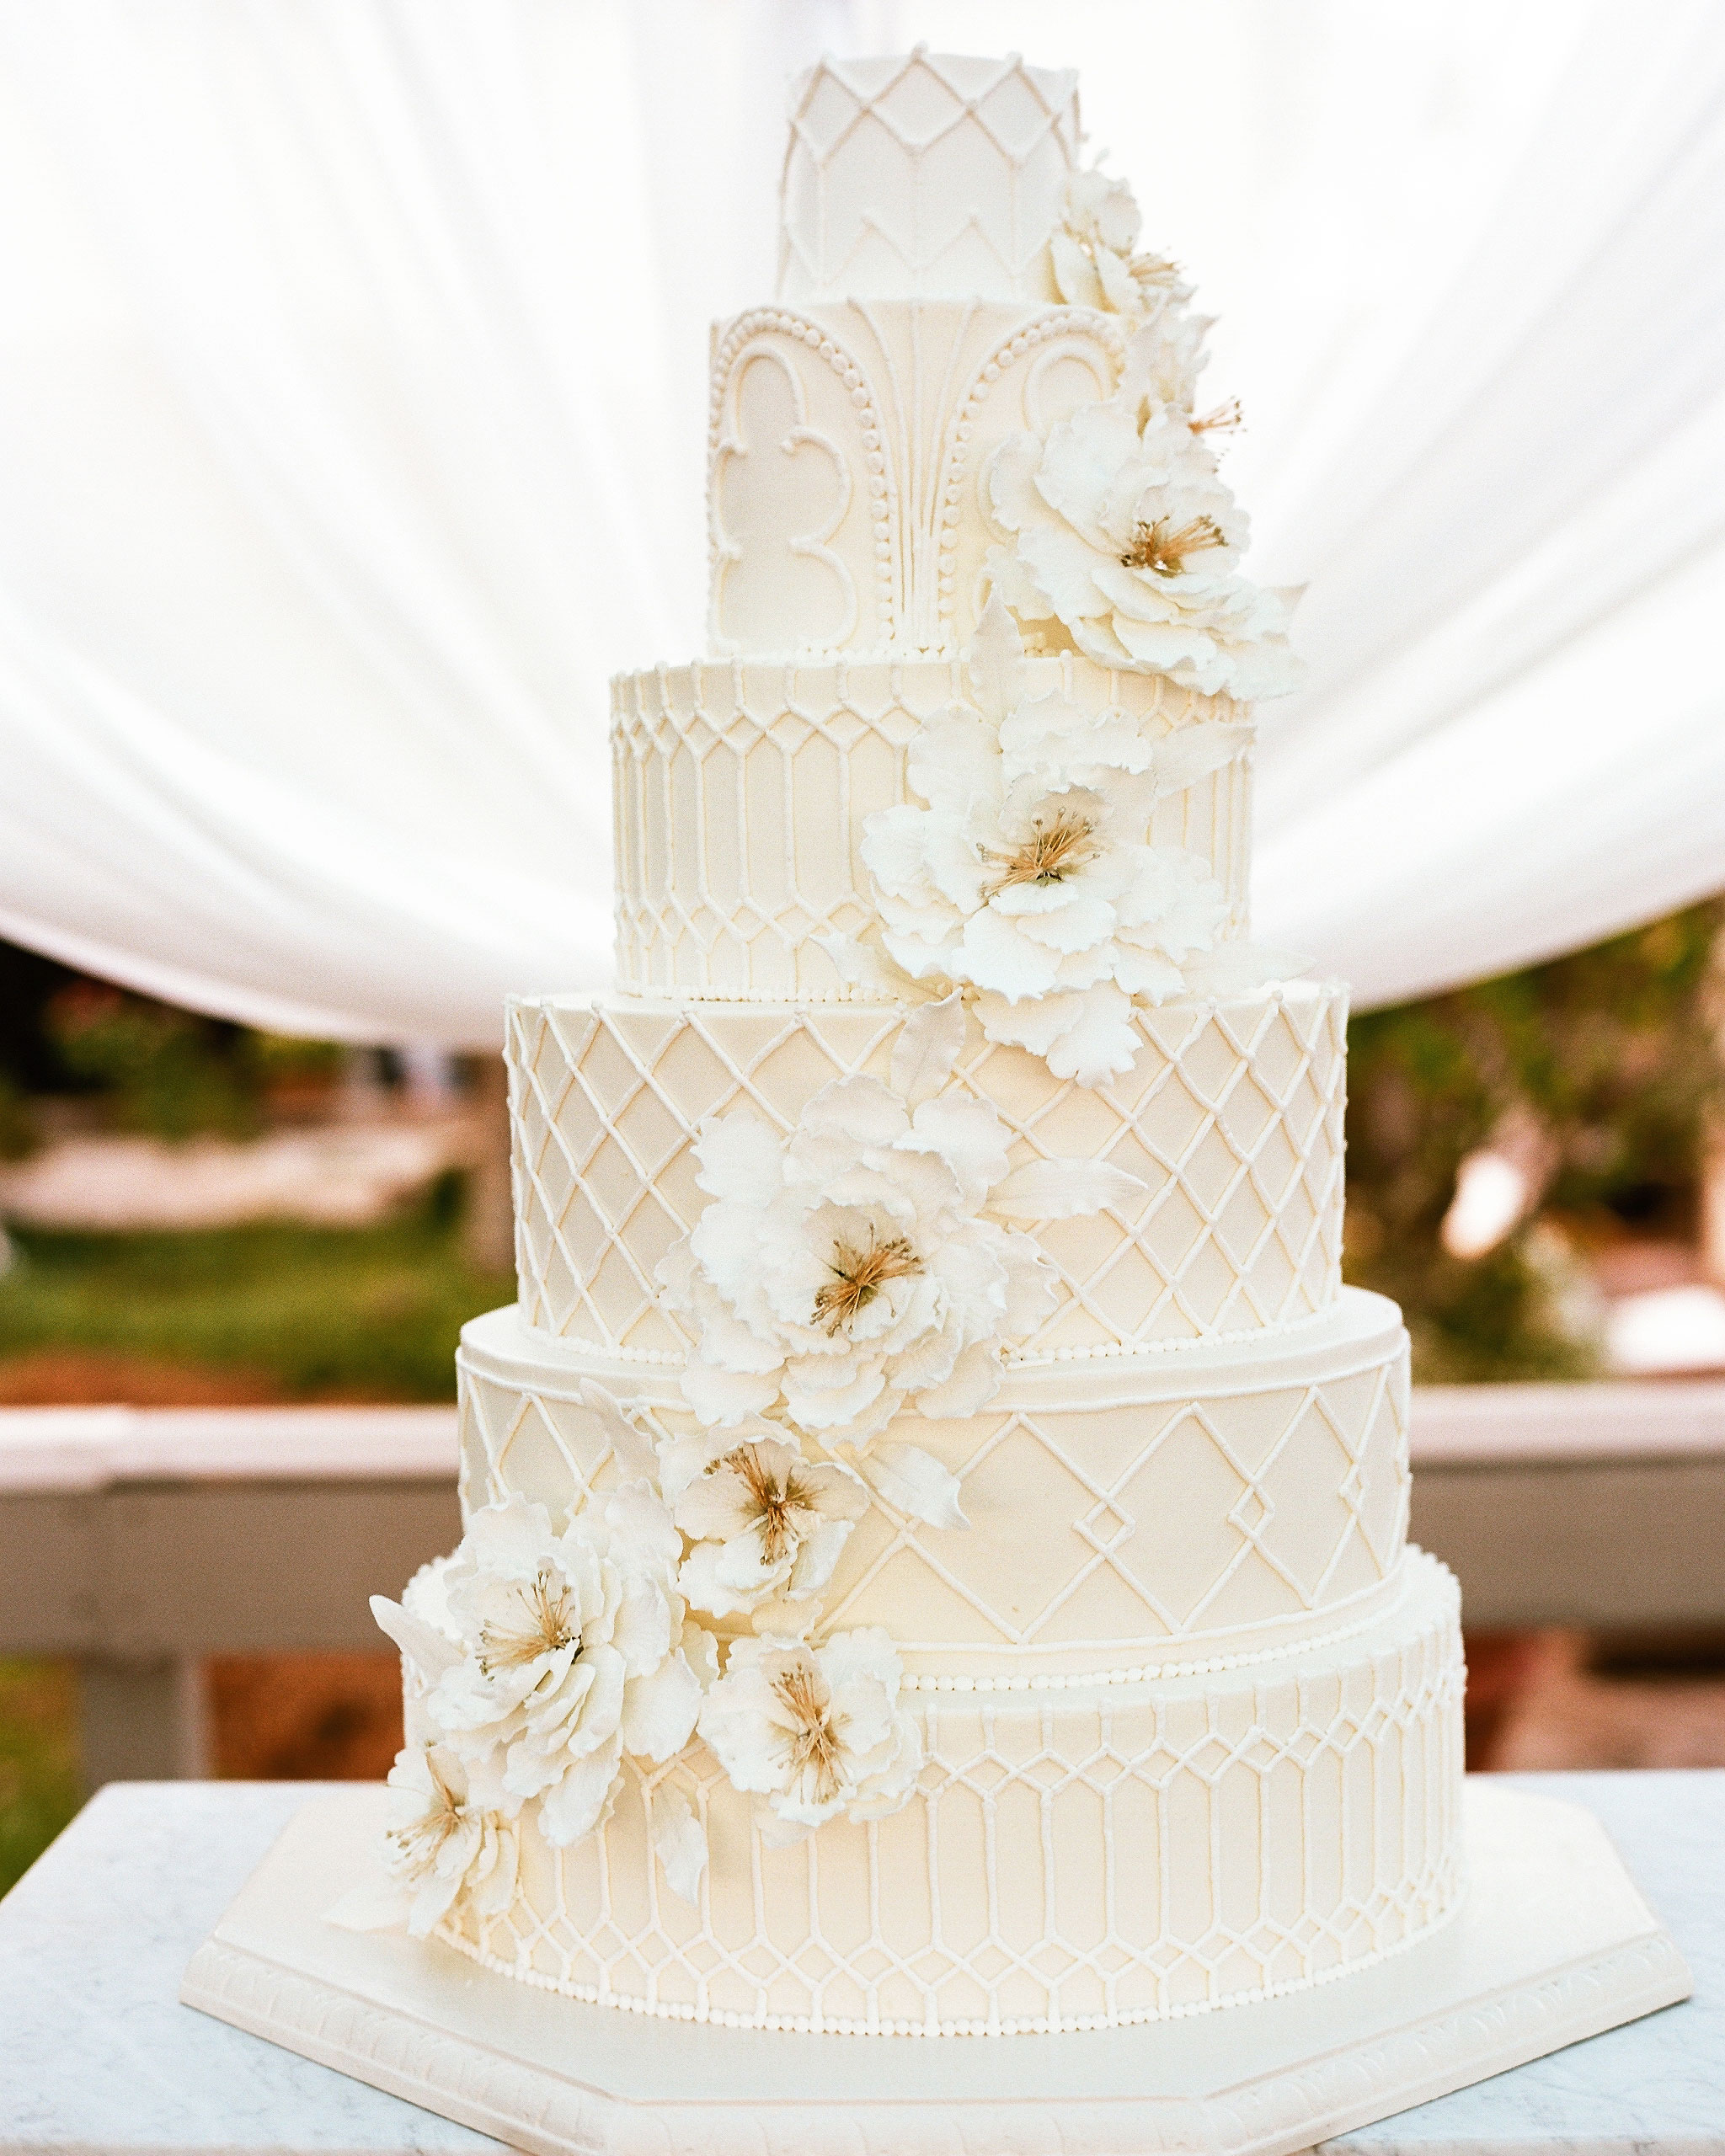 nancy-nathan-wedding-cake-1124-6141569-0816.jpg